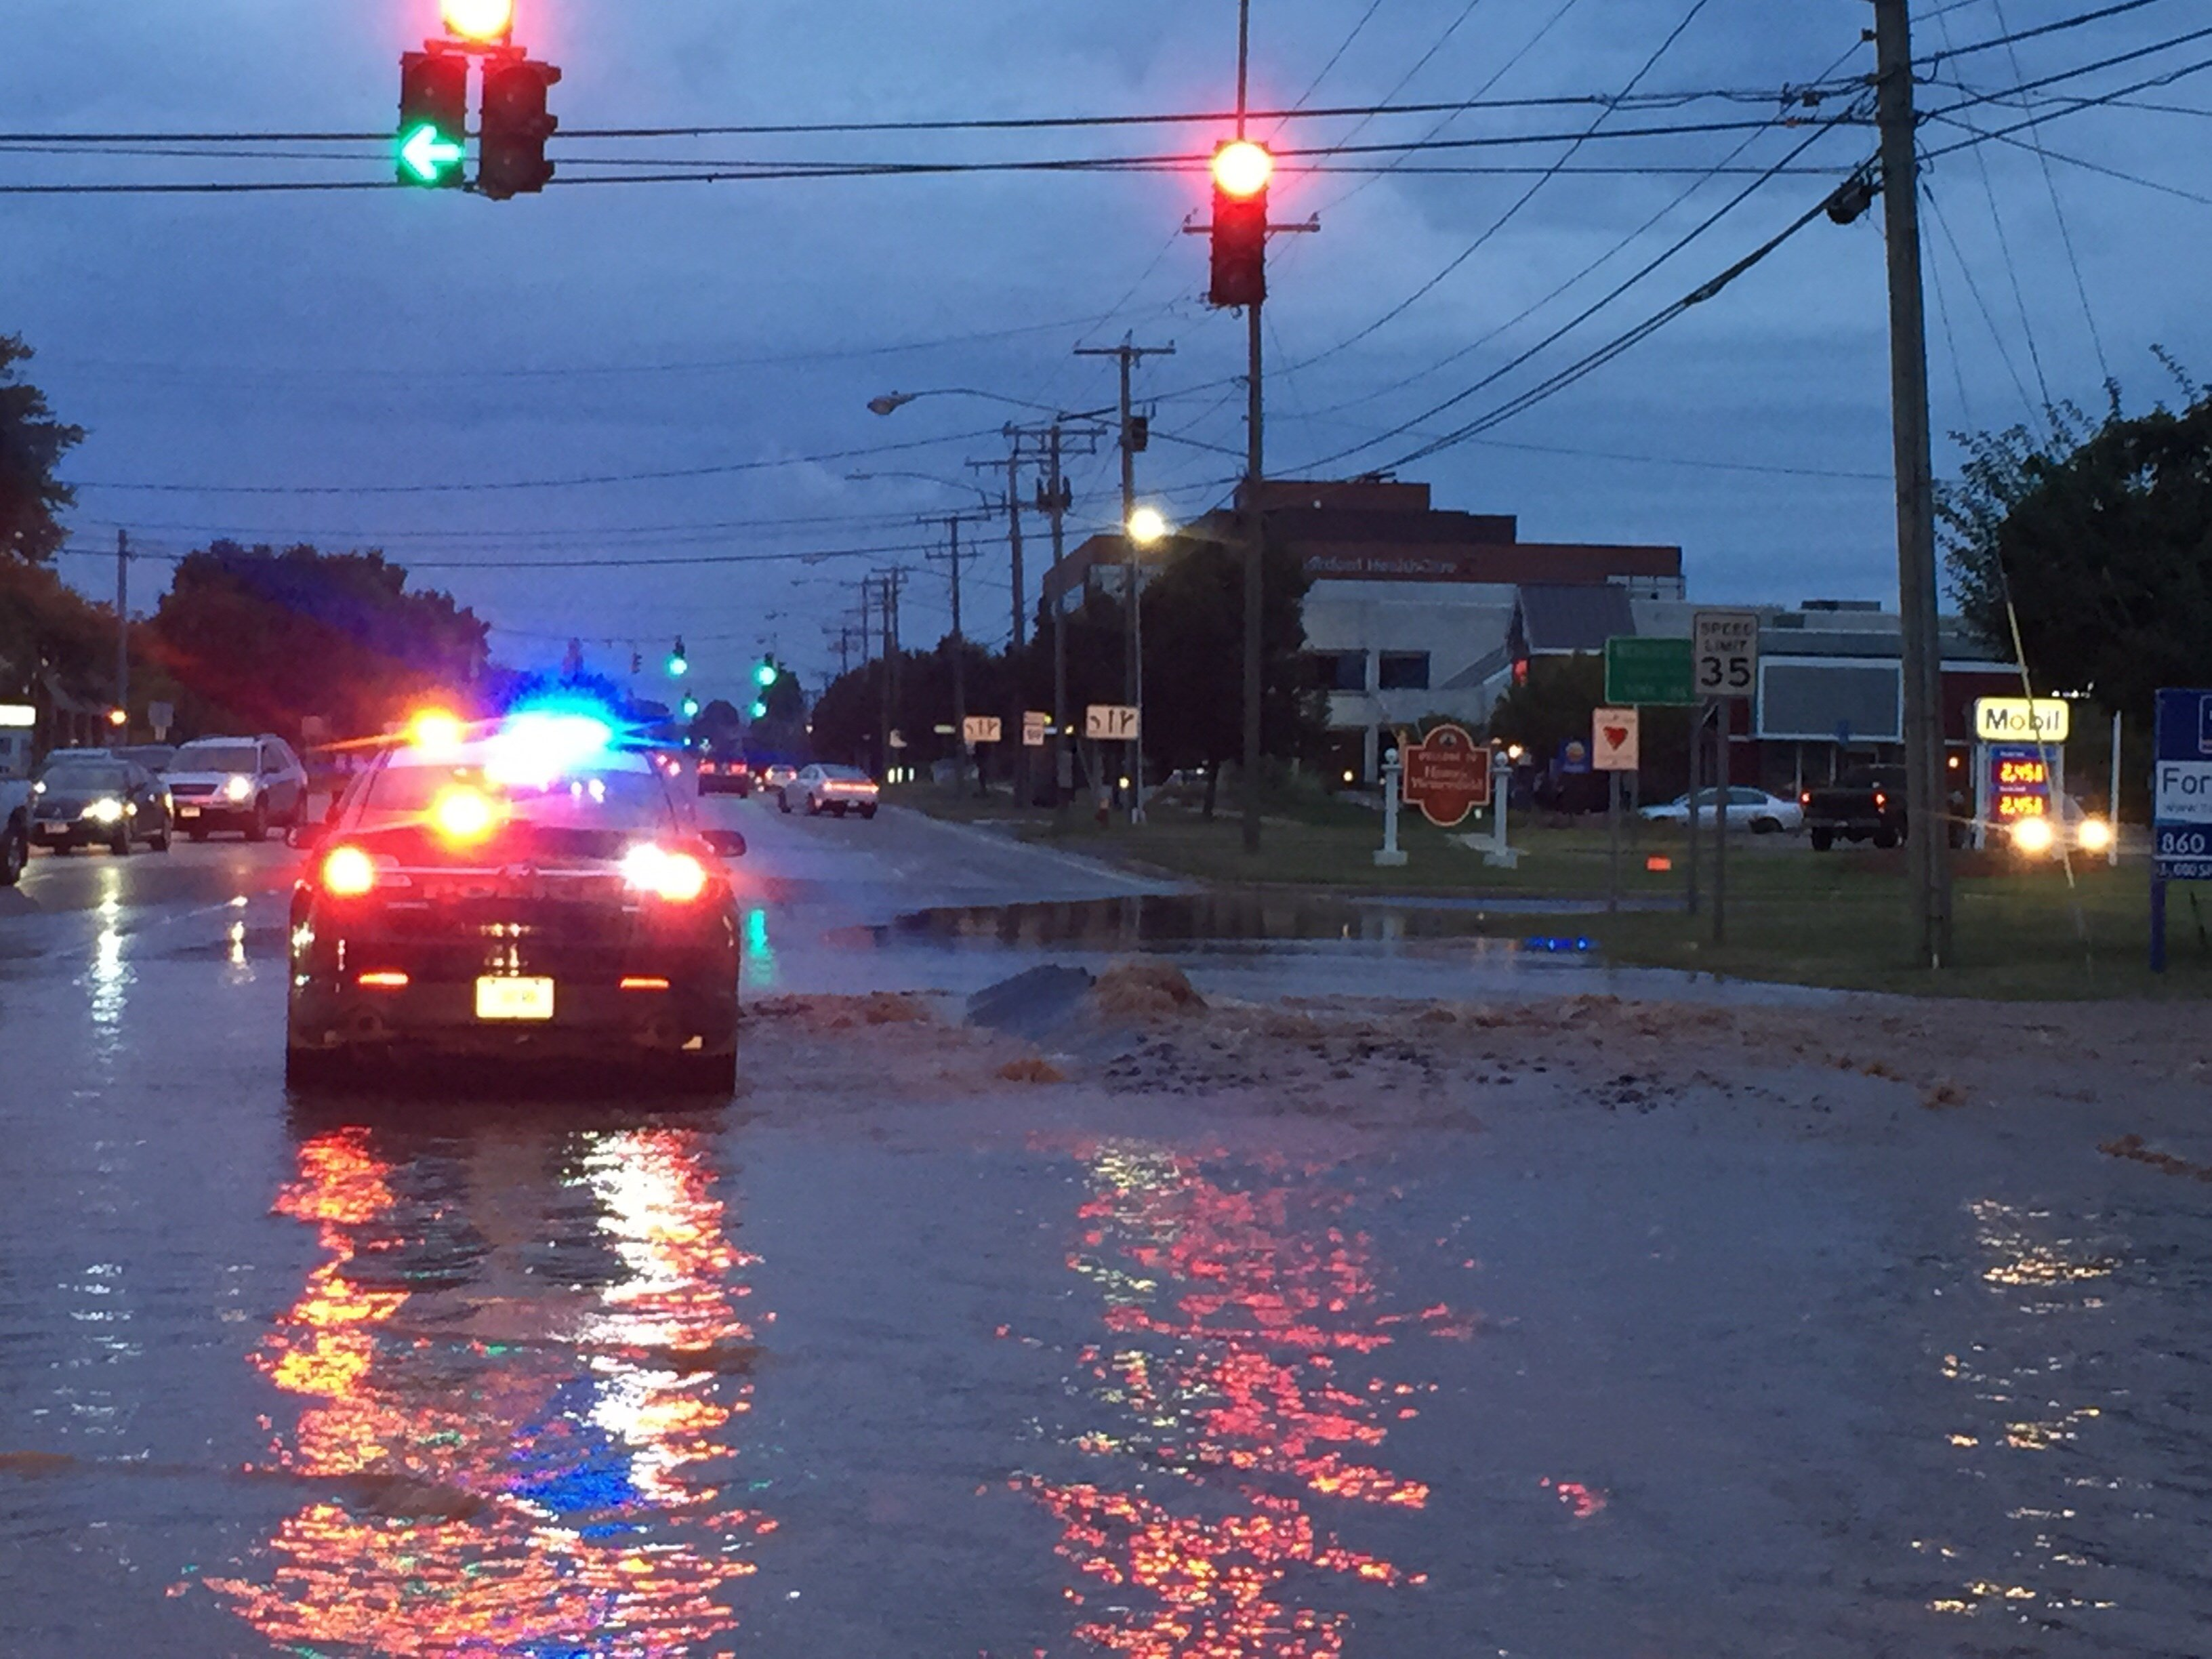 Silas Deane Highway Reopened After Water Main Break